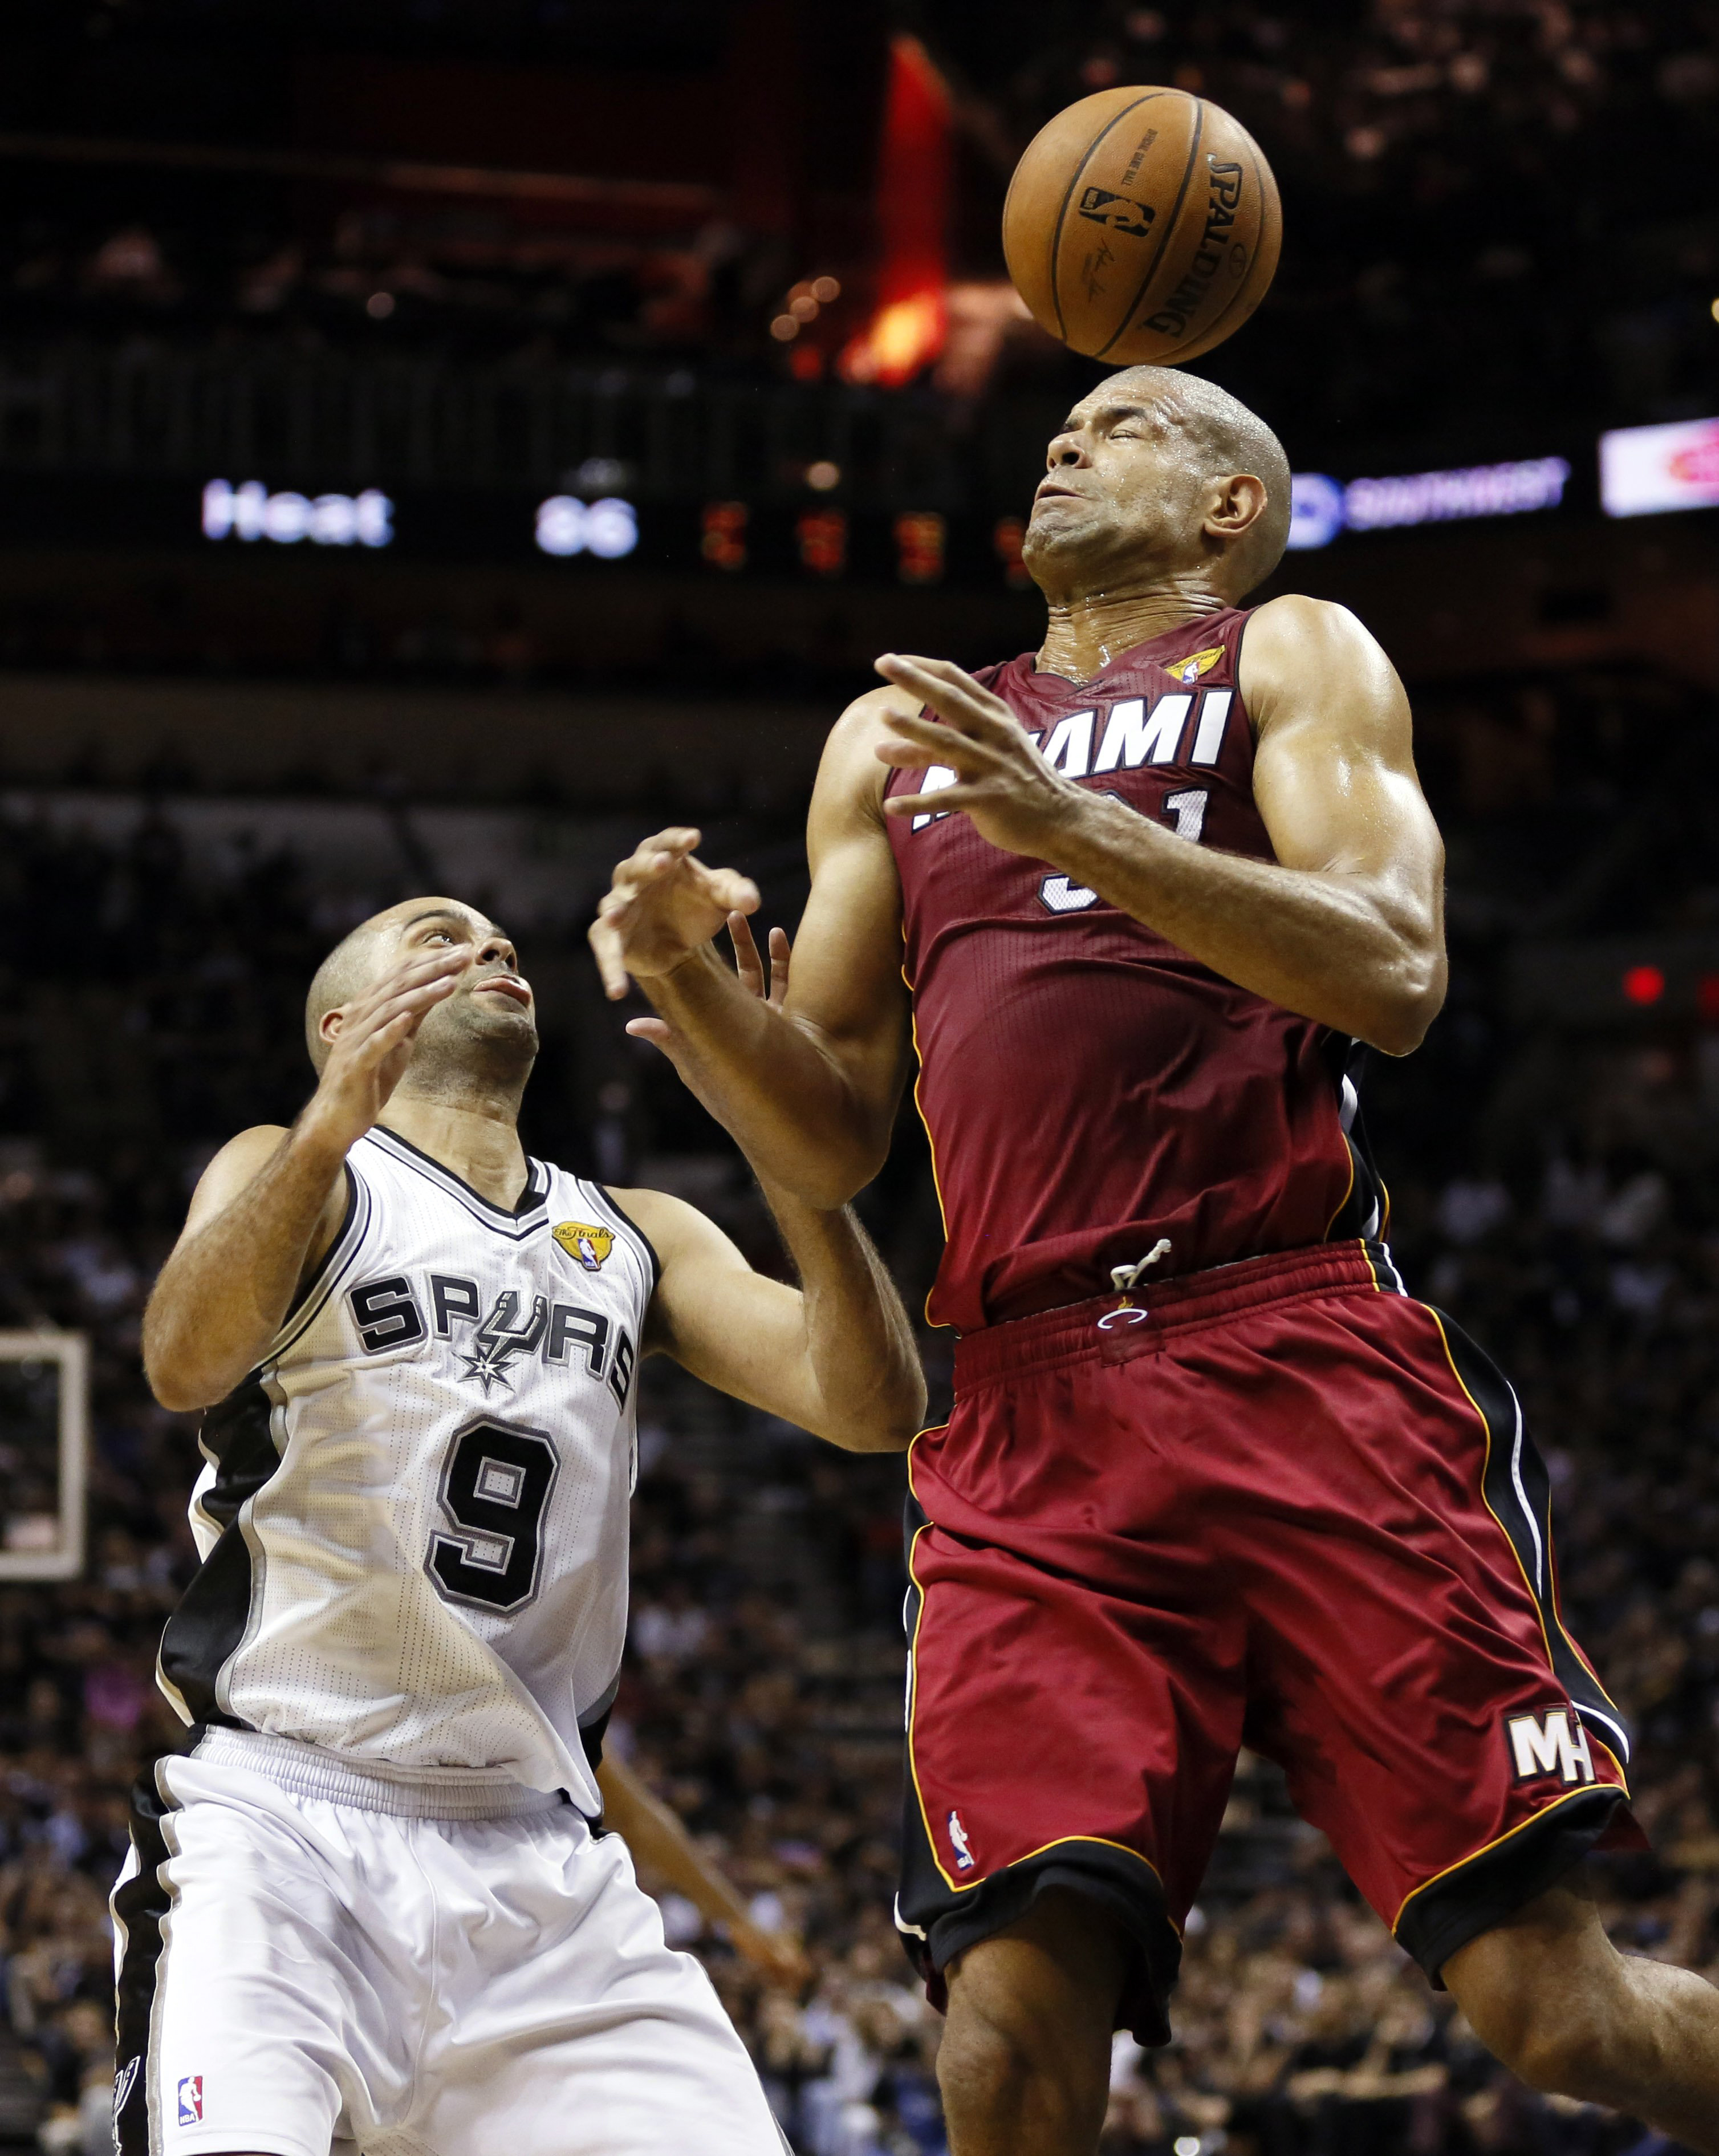 San Antonio Spurs guard Tony Parker (9) and Miami Heat guard Ray Allen (34) go for a loose ball during the fourth quarter in Game 1 of the 2014 NBA Finals in San Antonio on June 5, 2014.